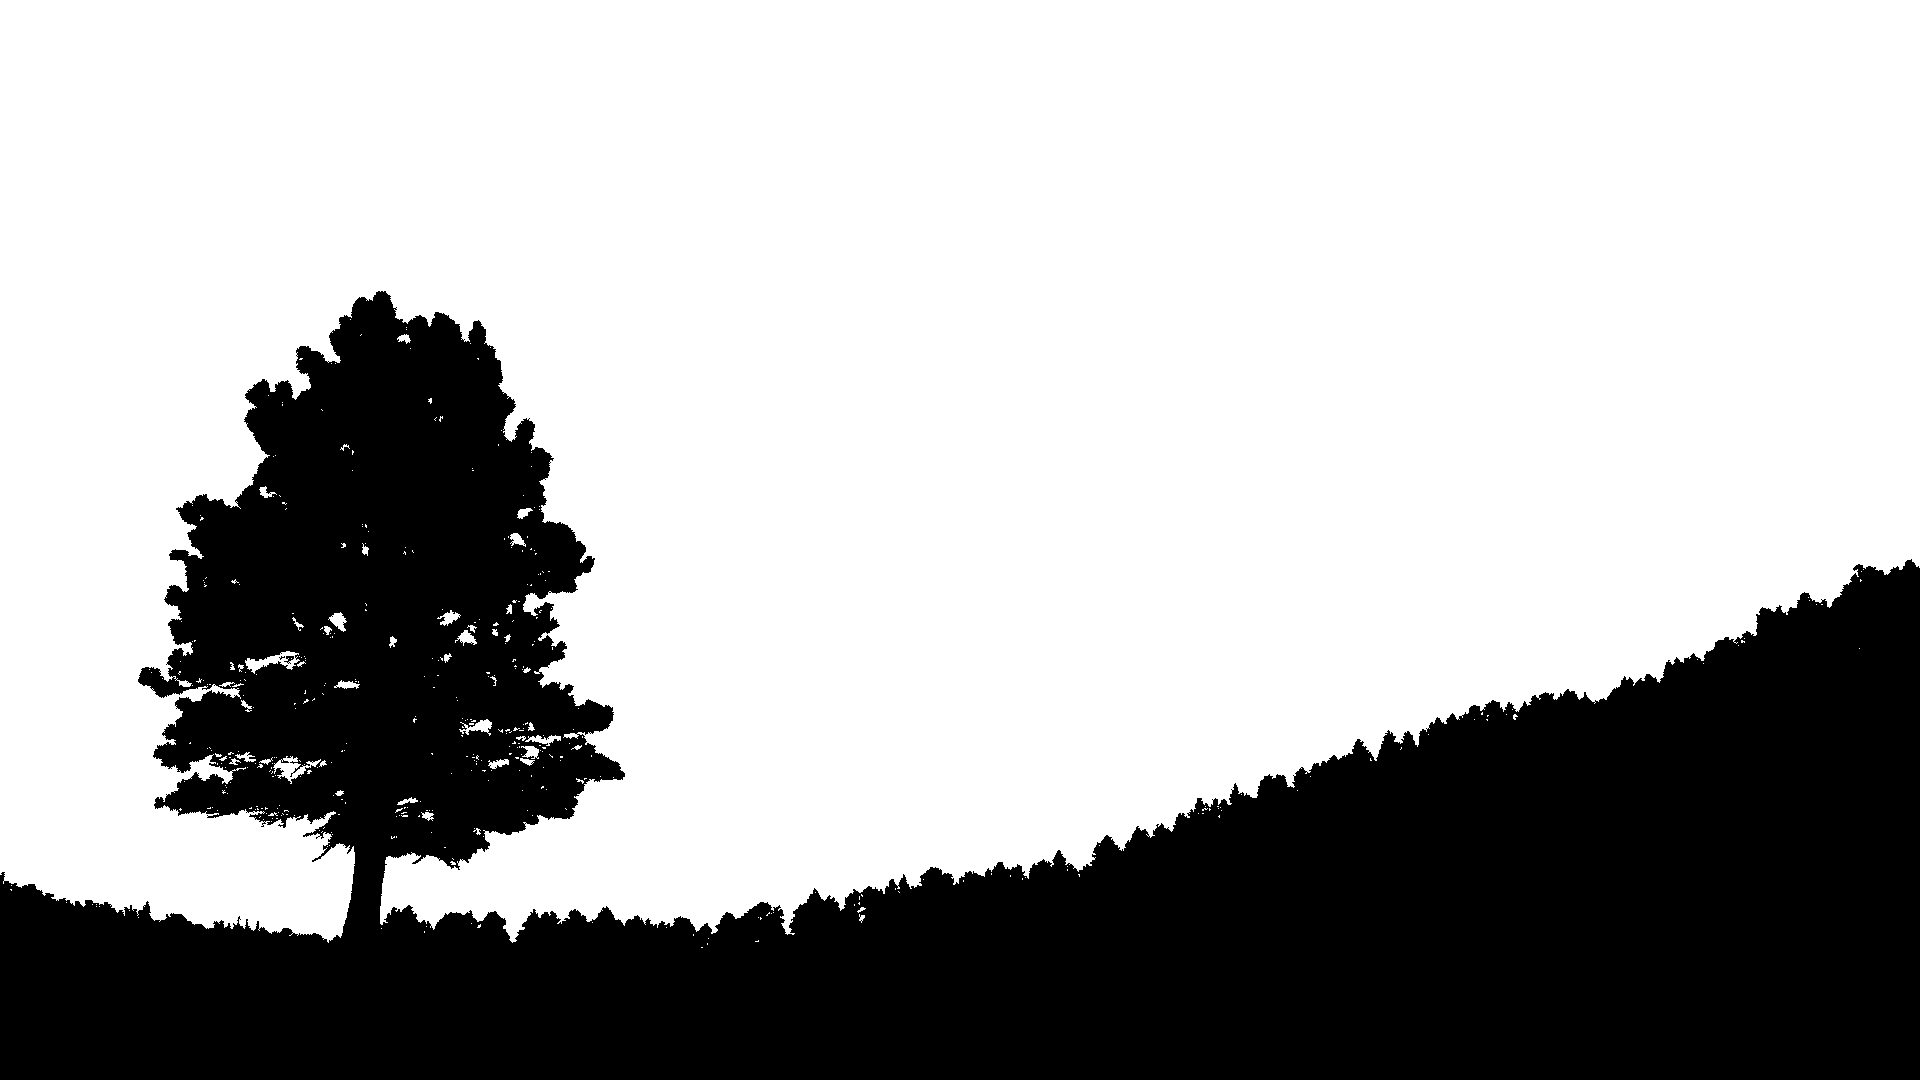 Hill silhouette at getdrawings. Hunting clipart landscape